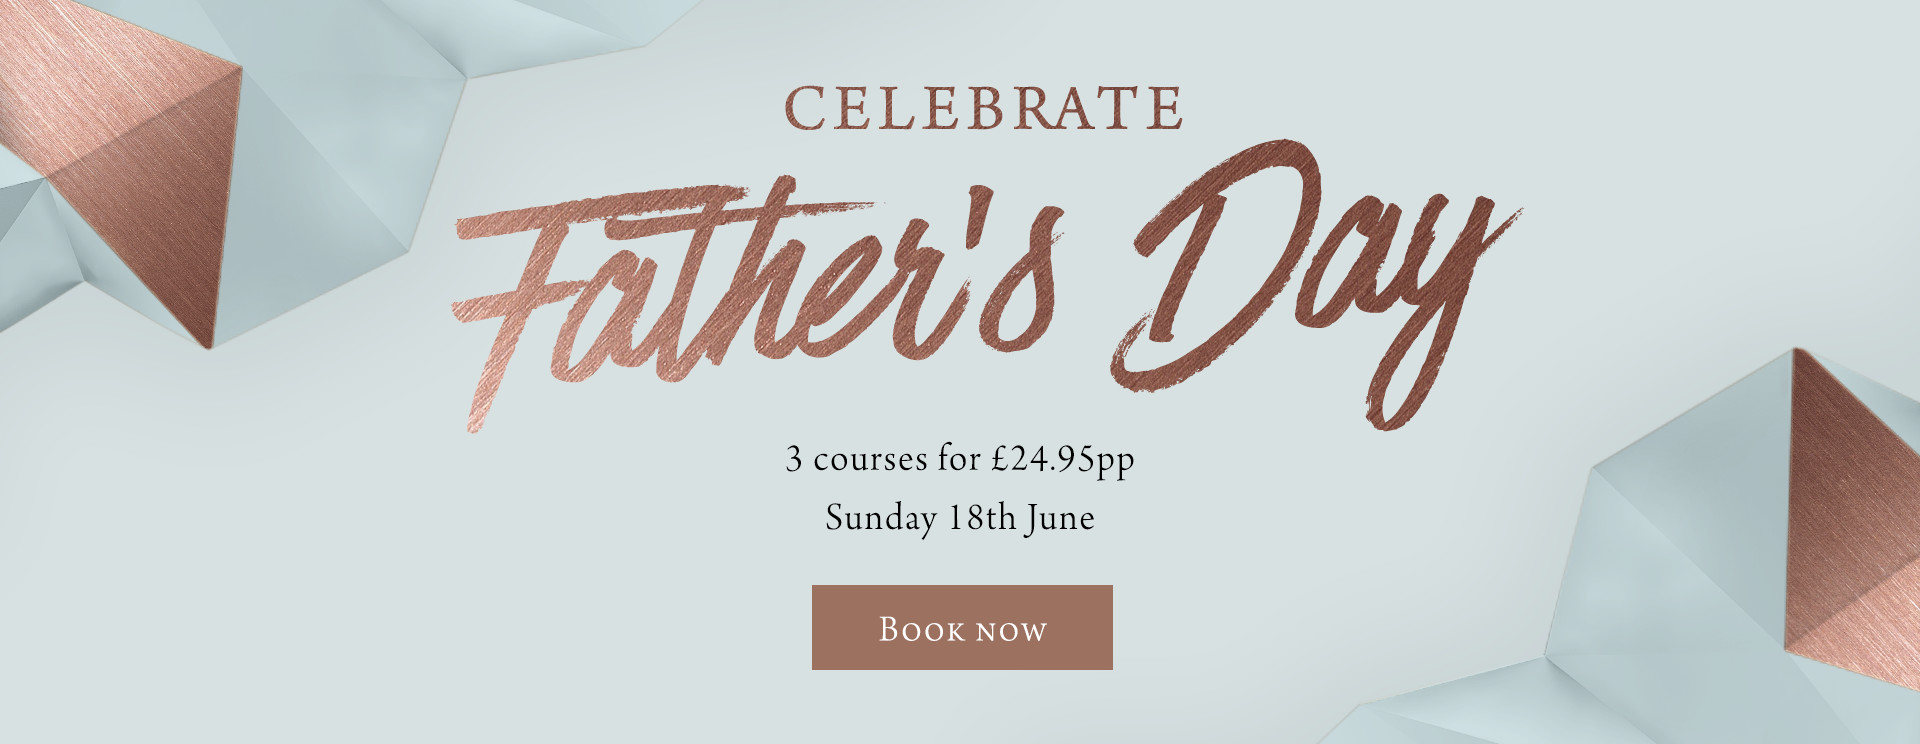 Father's Day at The Apple Tree - Book now